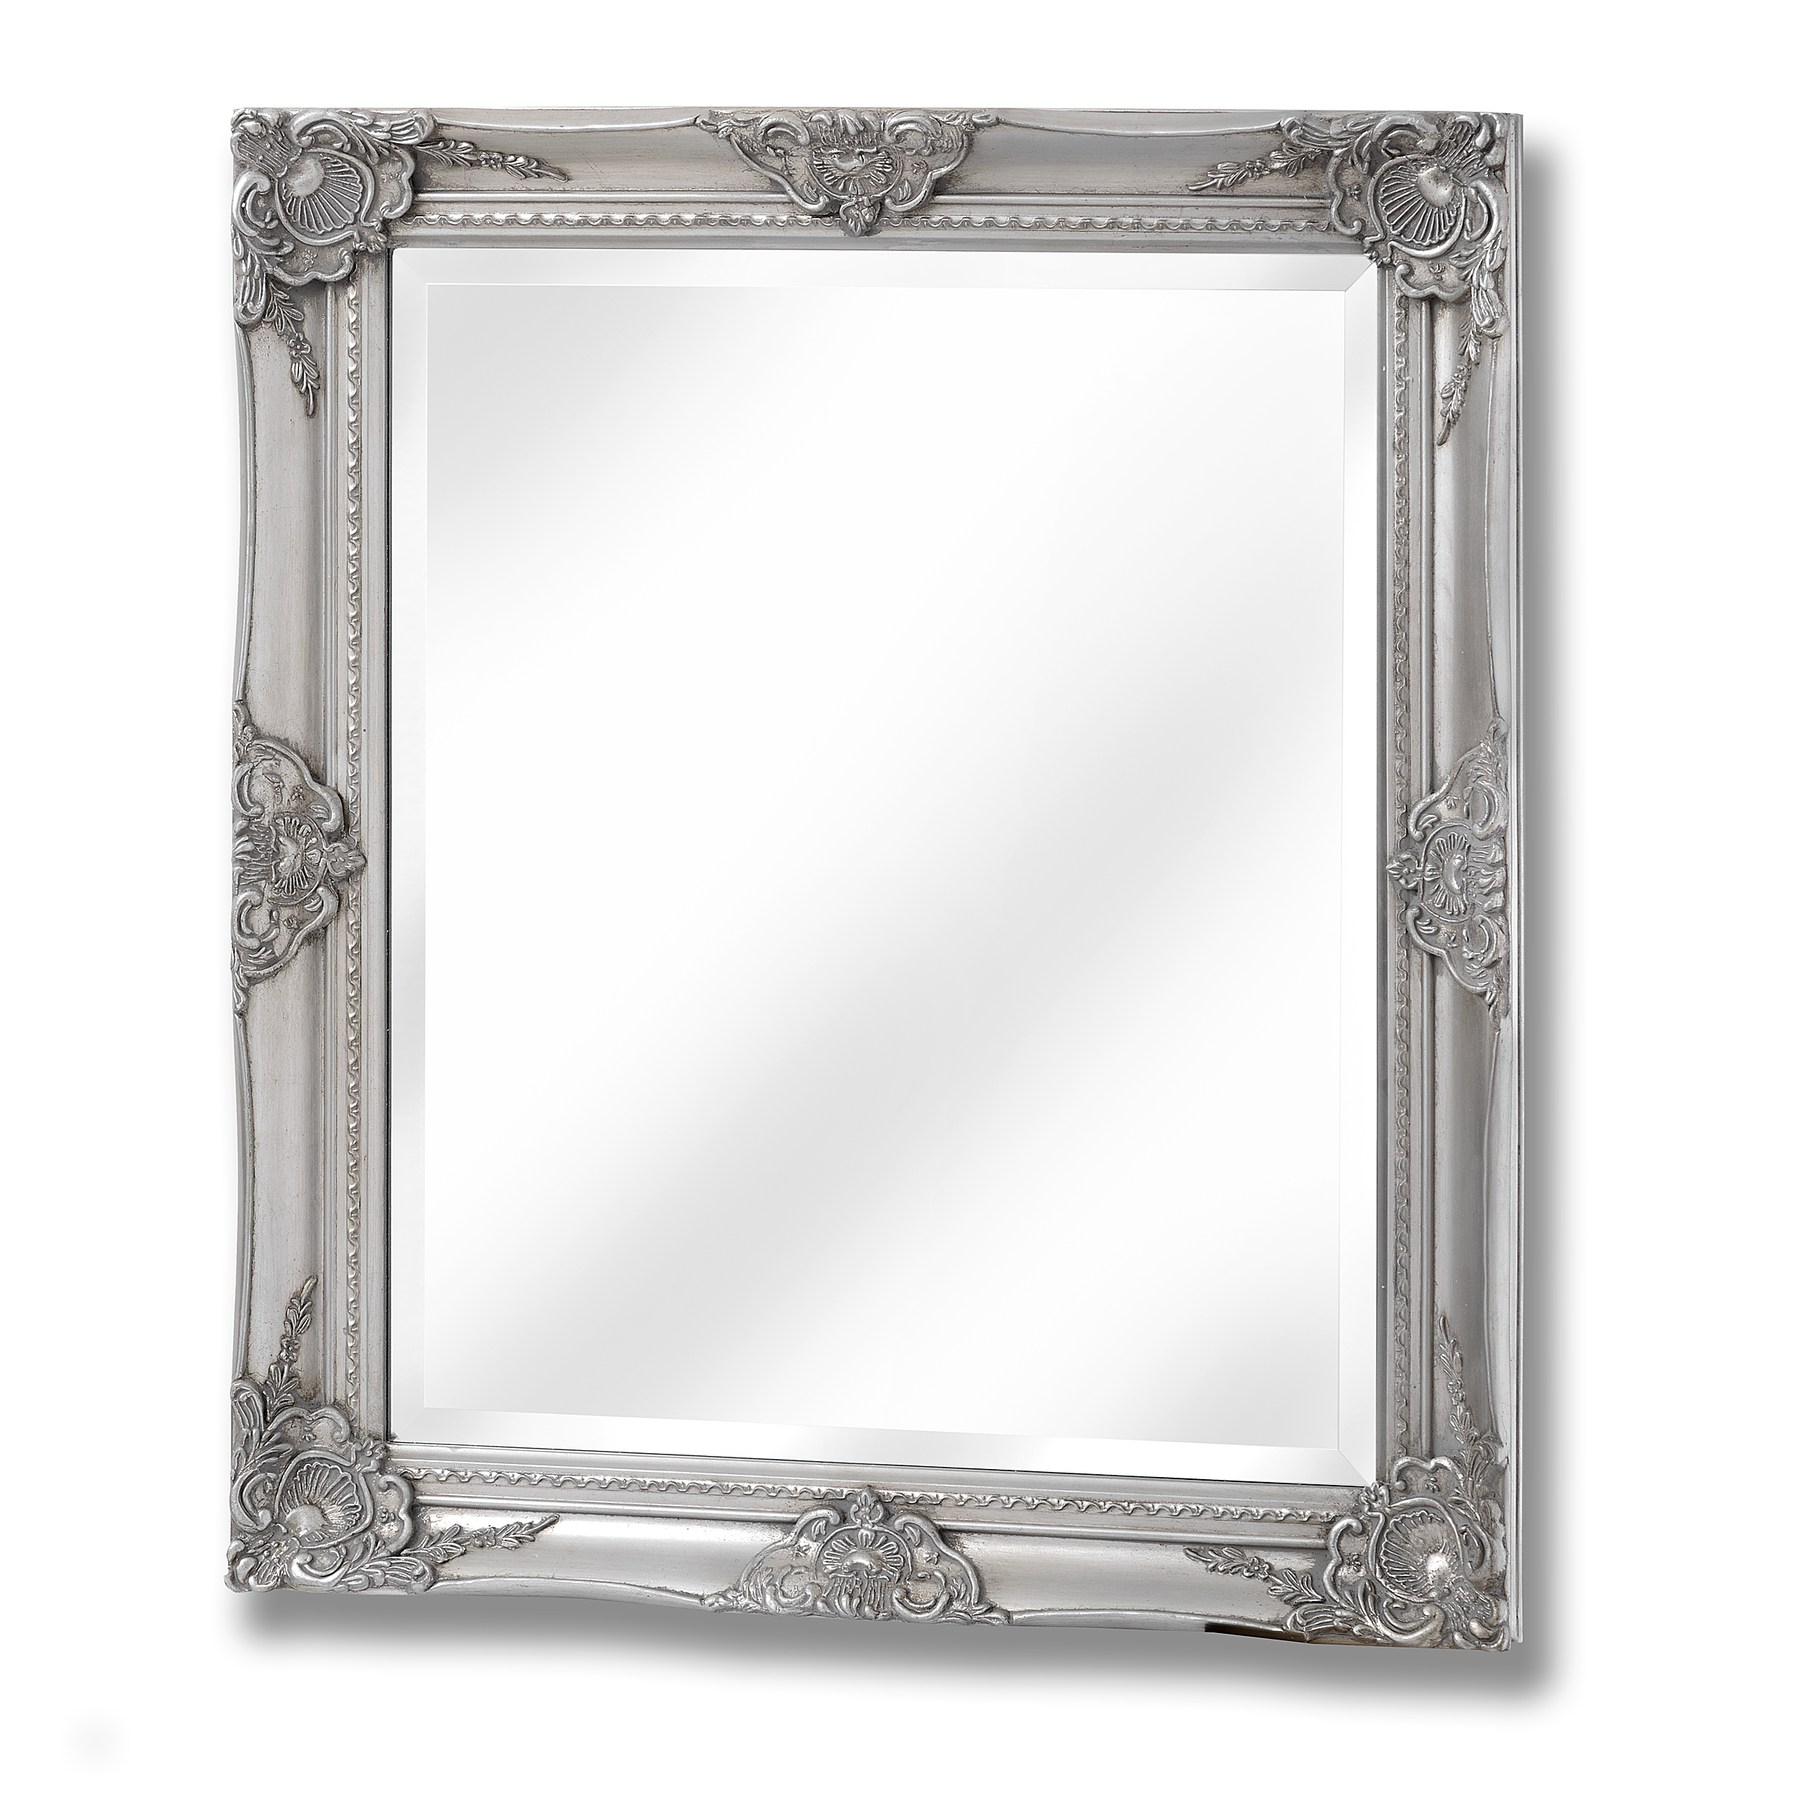 Baroque antique silver mirror